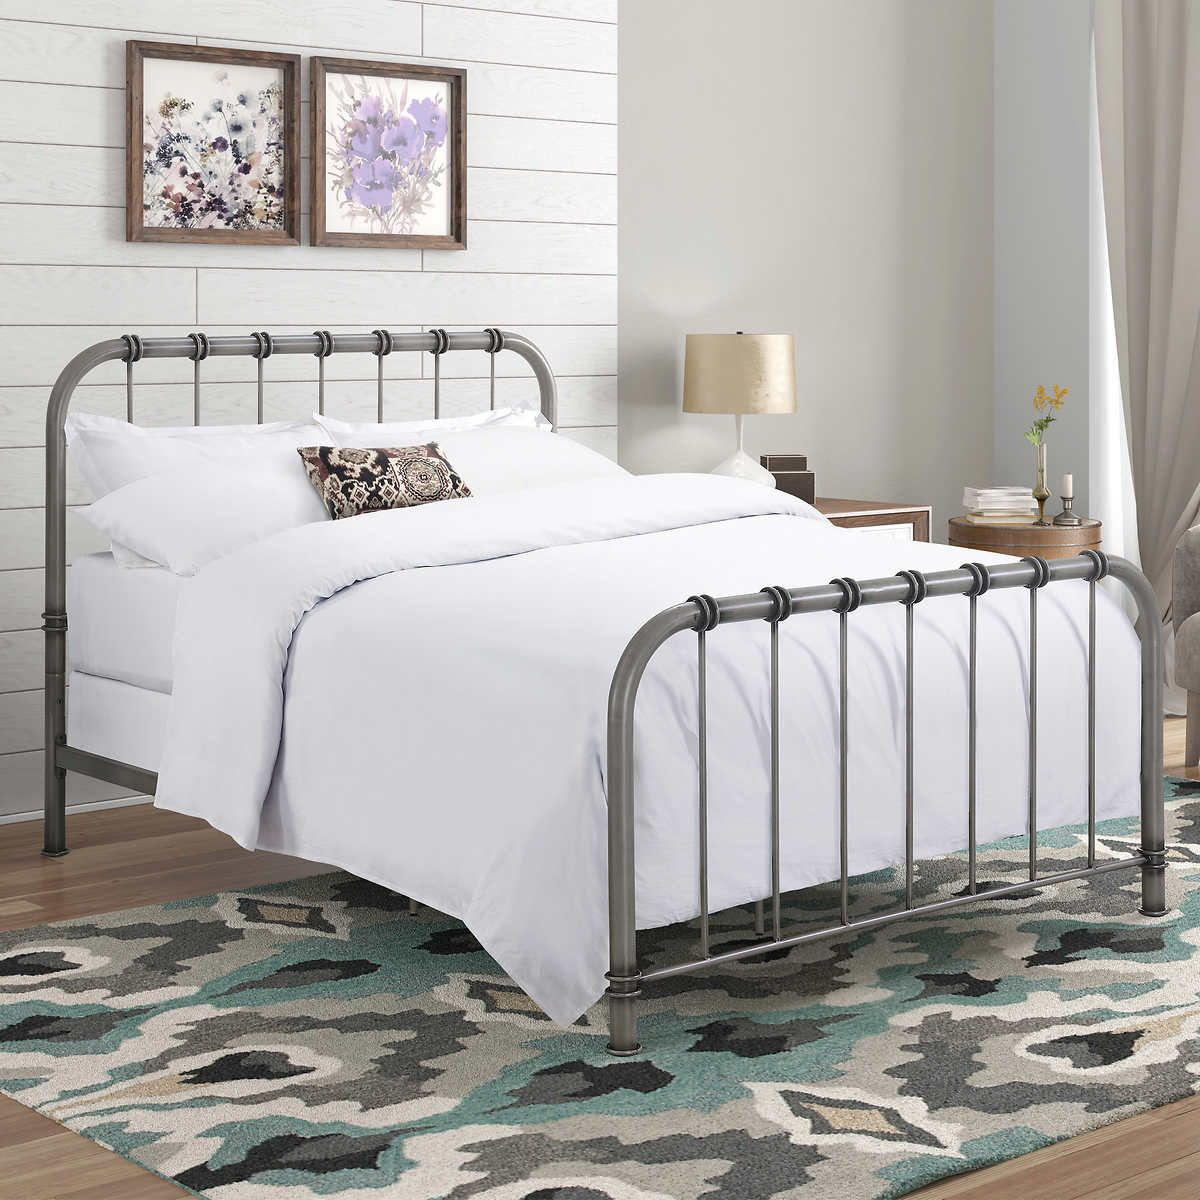 Pin By Rumesha Ahmed On Sonoma House Queen Bed Frame Bed Frame